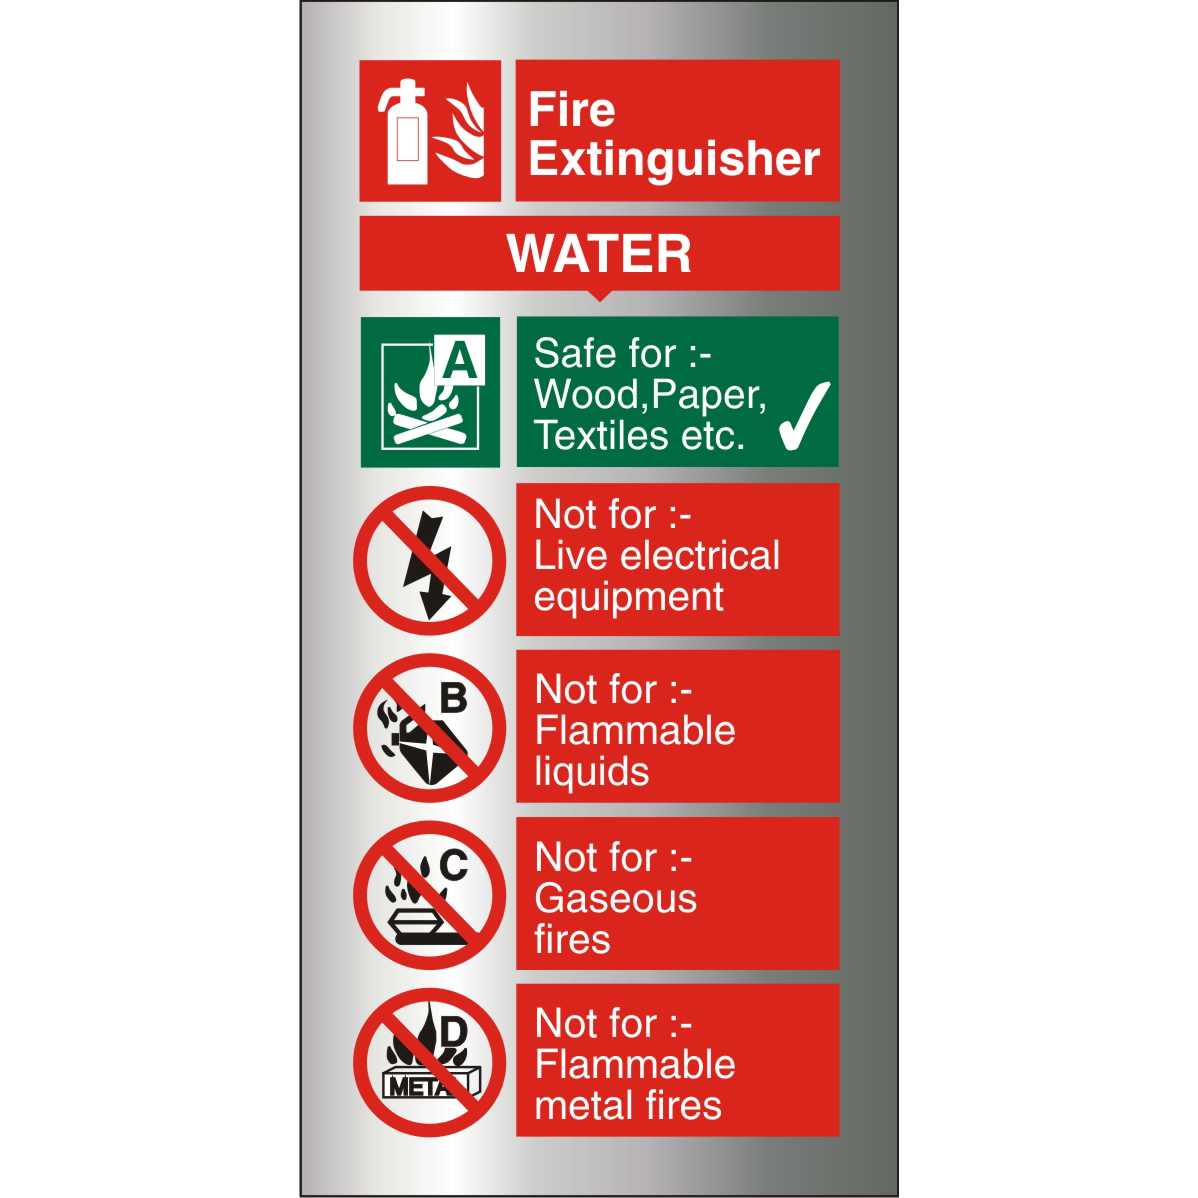 Brushed Alu Comp Sign 100x200 1.5mm S/A Fire ExtinguisherWater Ref BAFF091100x200 Up to 10 Day Leadtime